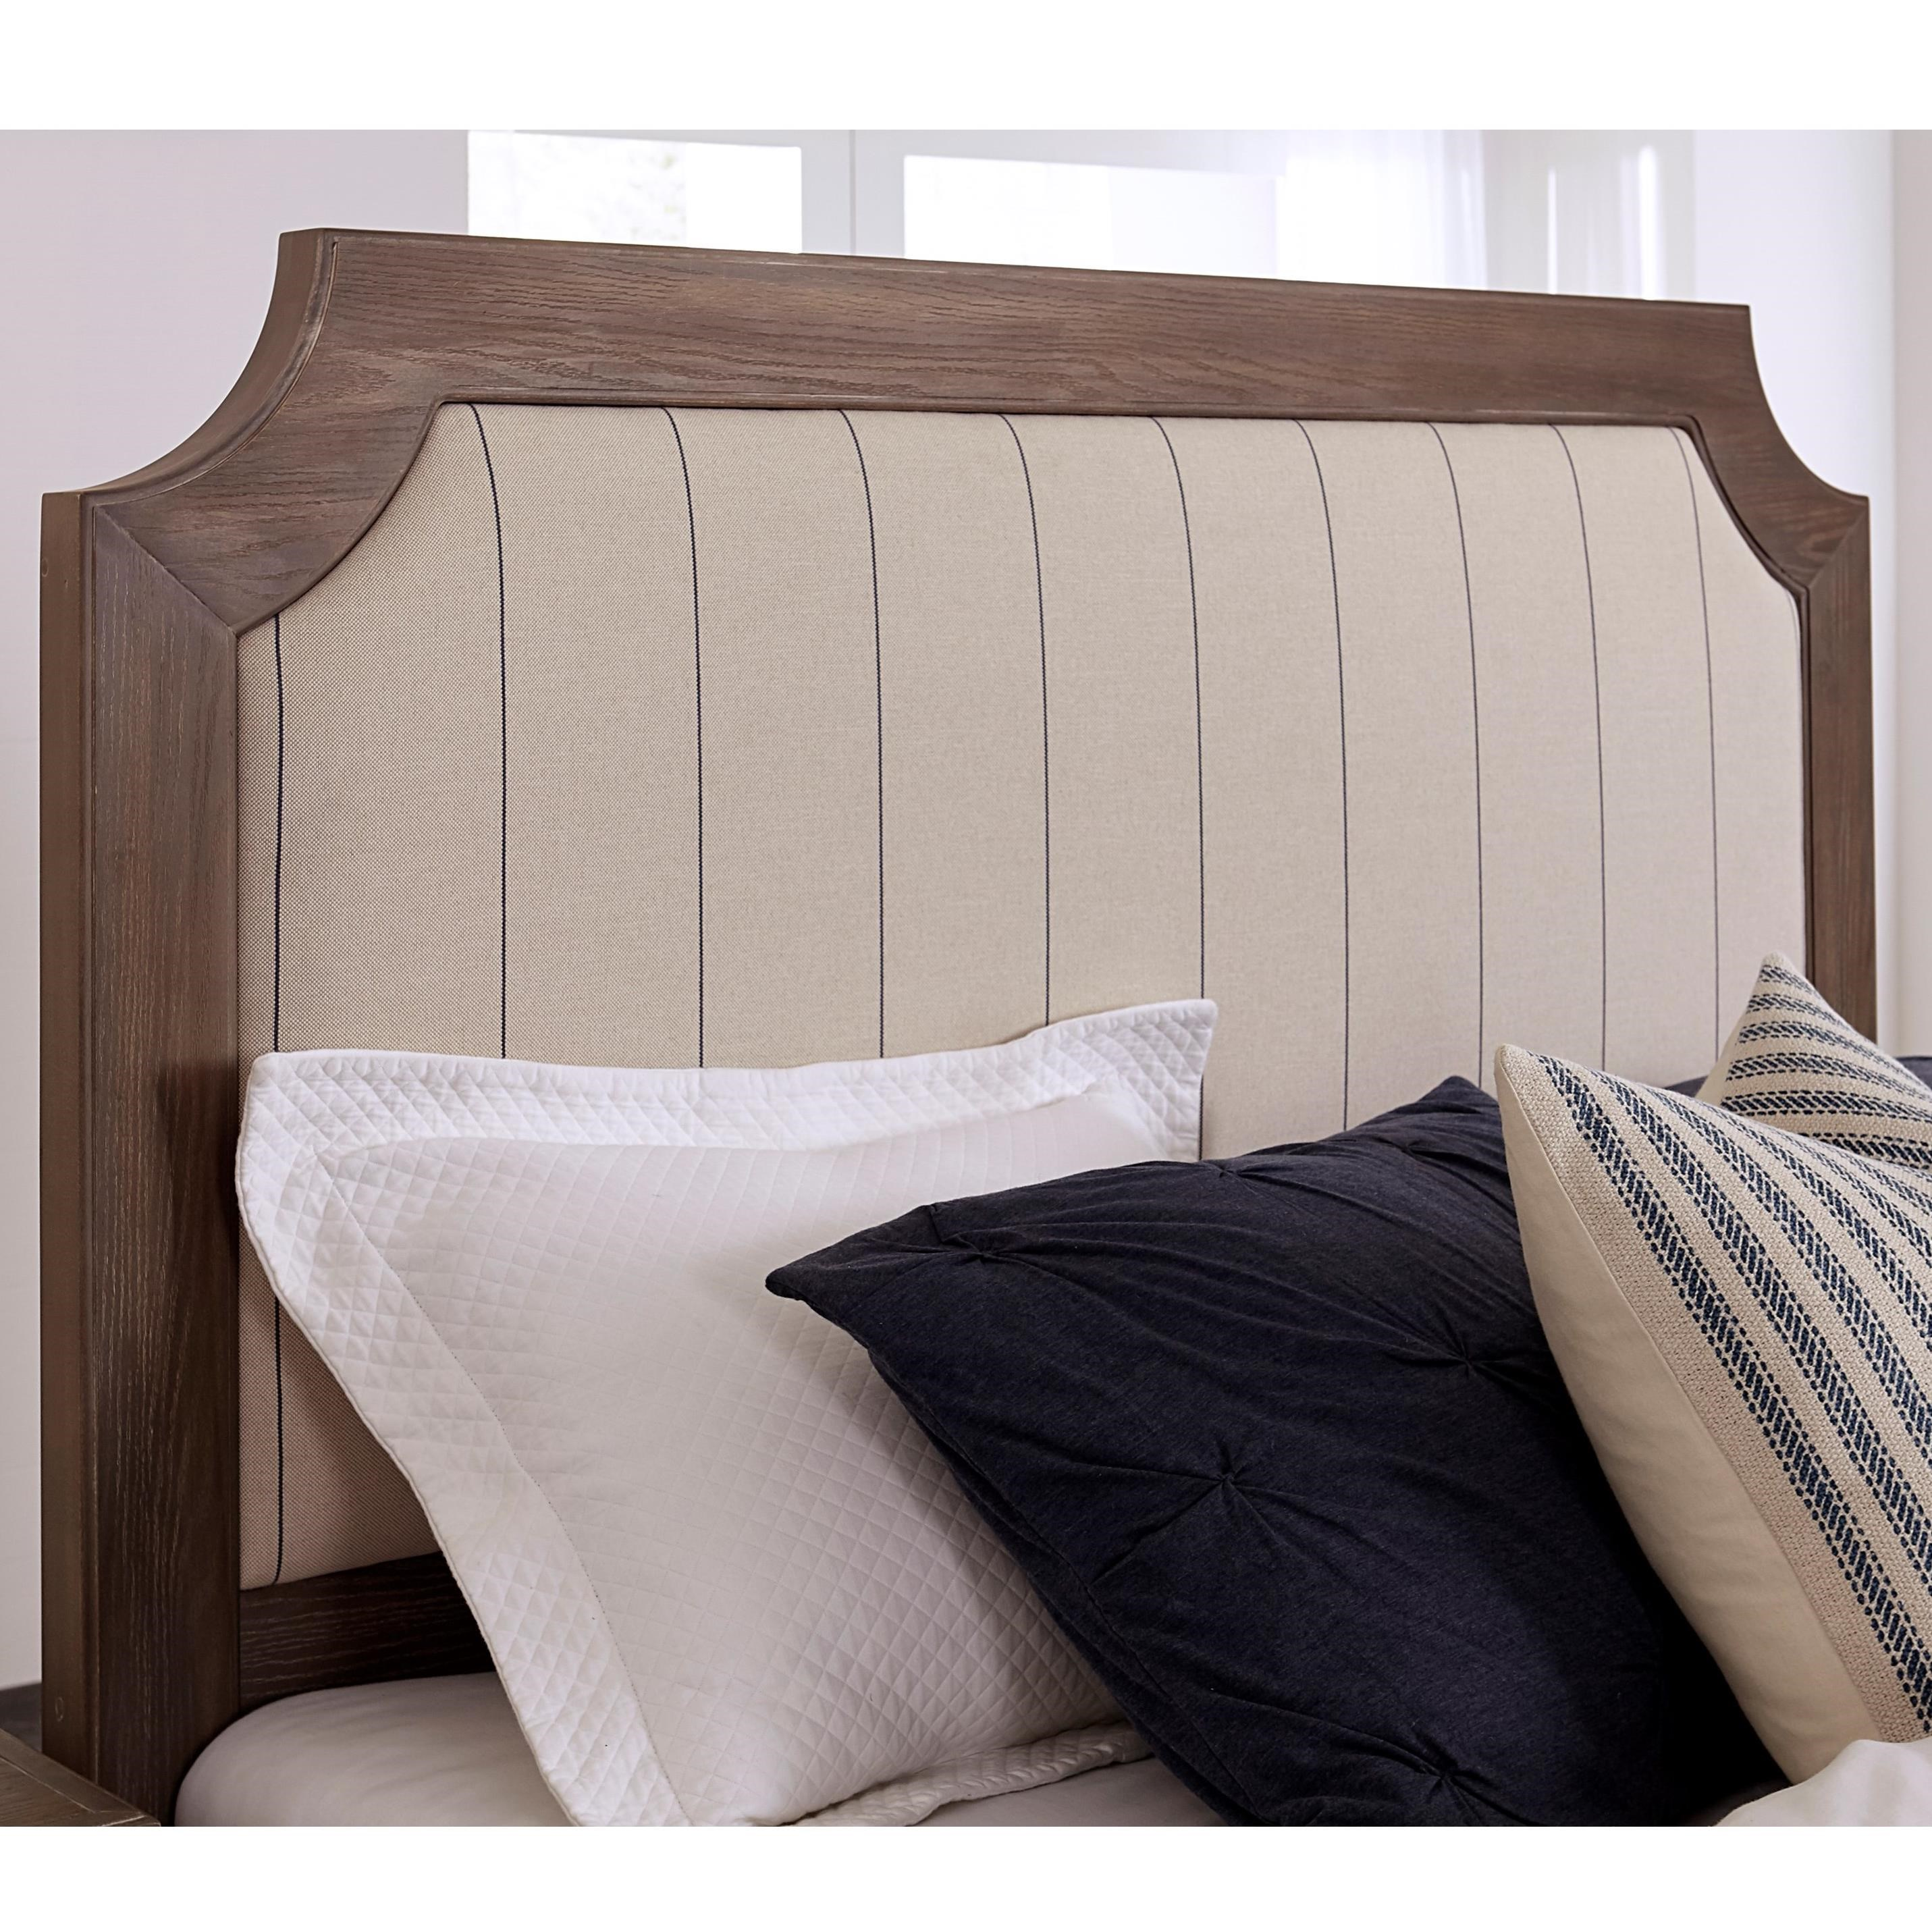 Bungalow King Upholstered Headboard by Vaughan-Bassett at Crowley Furniture & Mattress